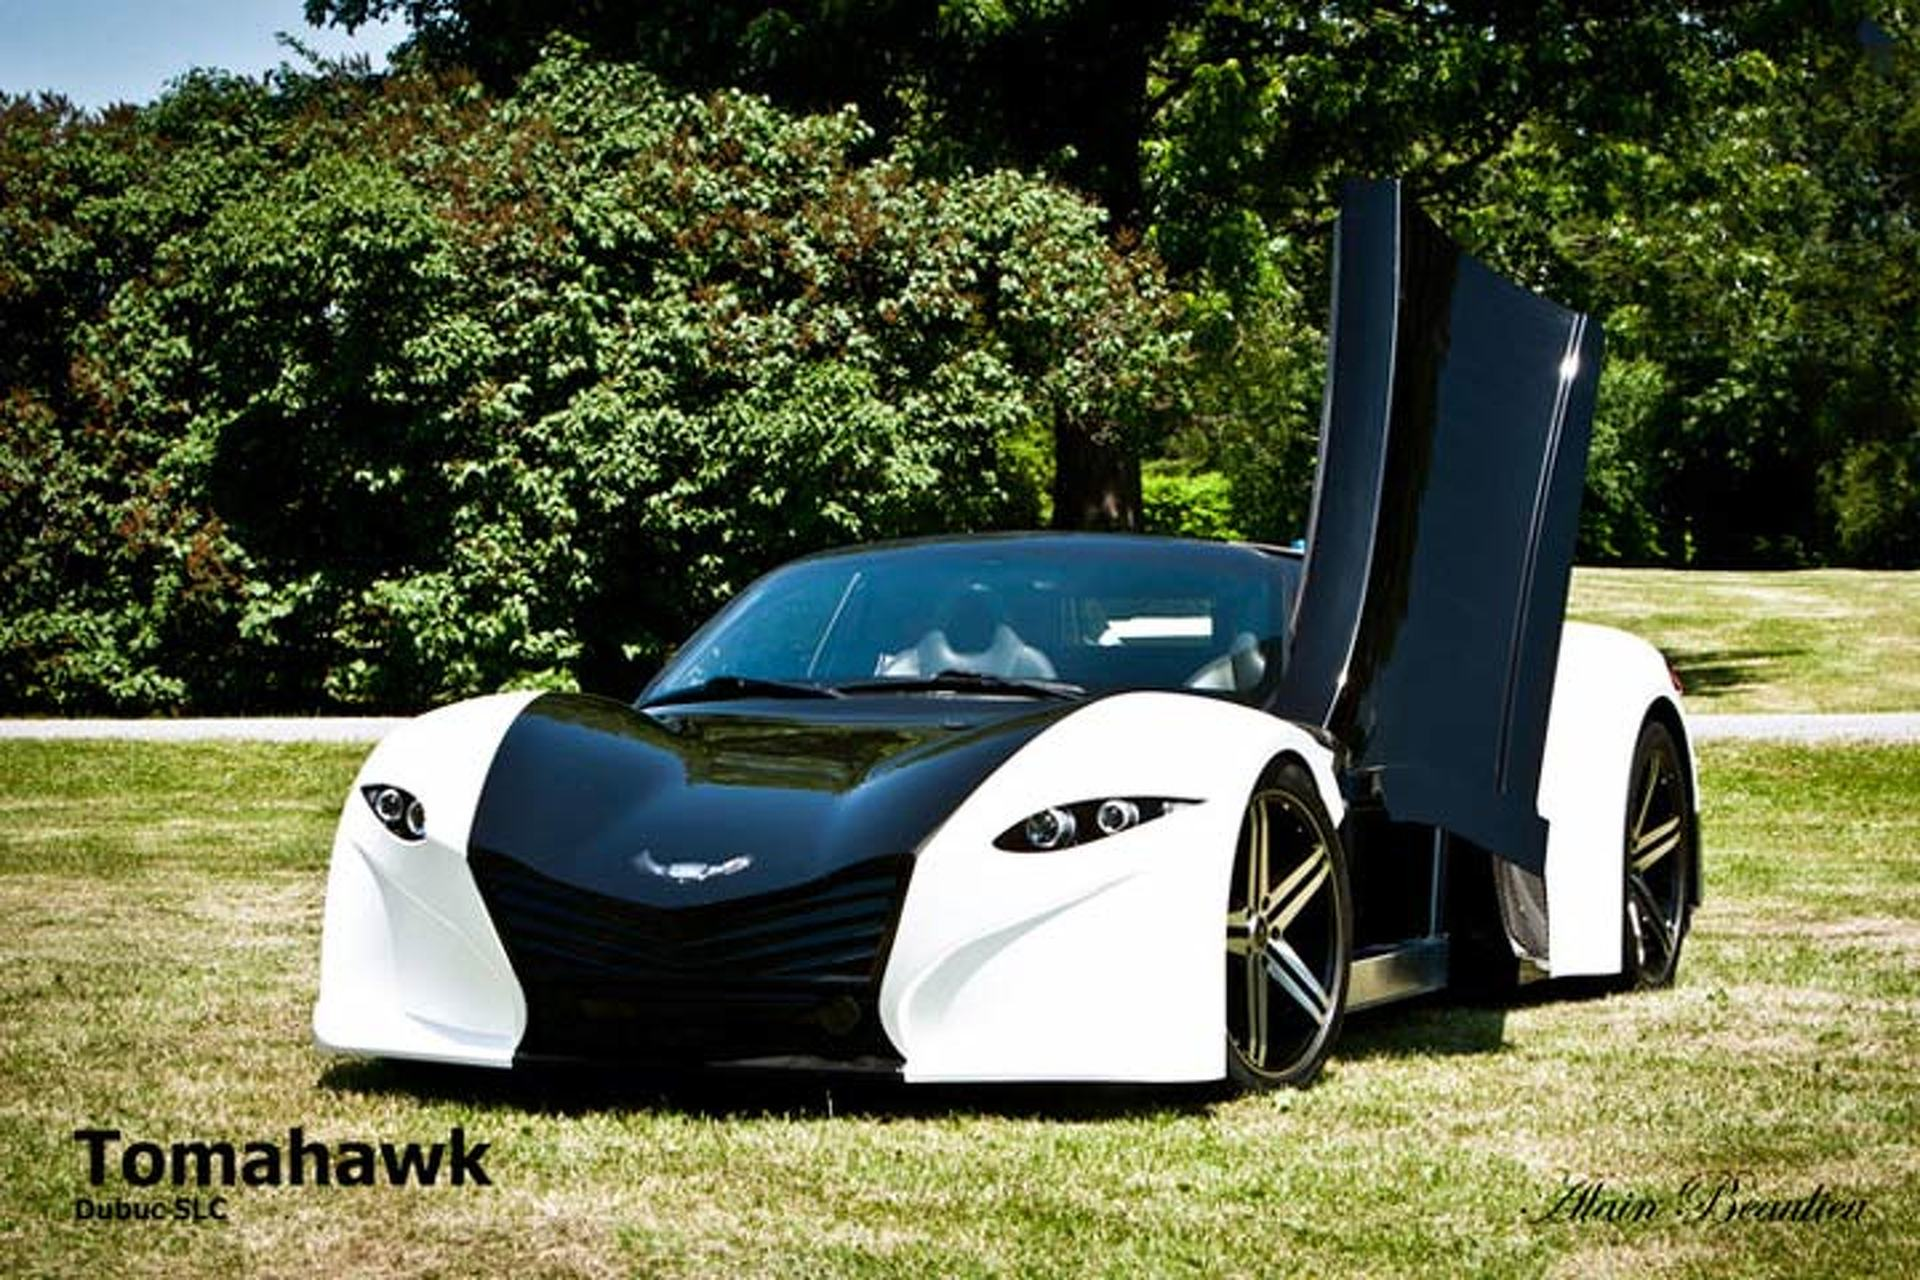 Dubuc Tomahawk EV Looks to Fight Tesla